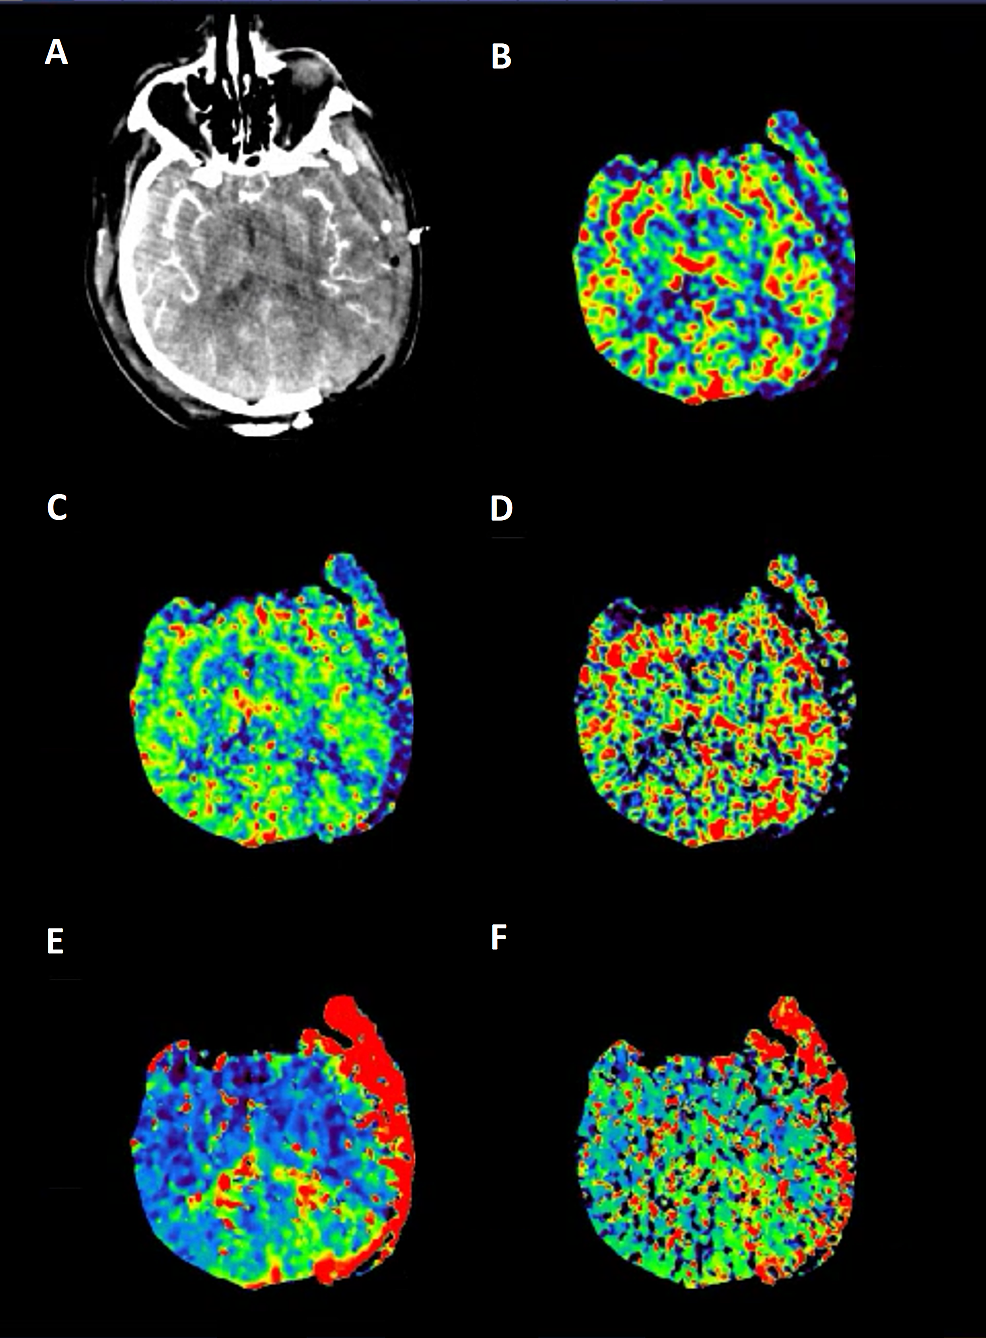 Computed-tomography-perfusion-demonstrating-(from-left-to-right)-(A)-CTA,-(B)-CBV,-(C)-CBF,-(D)-MTT,-(E)-TTP,-and-(F)-delay